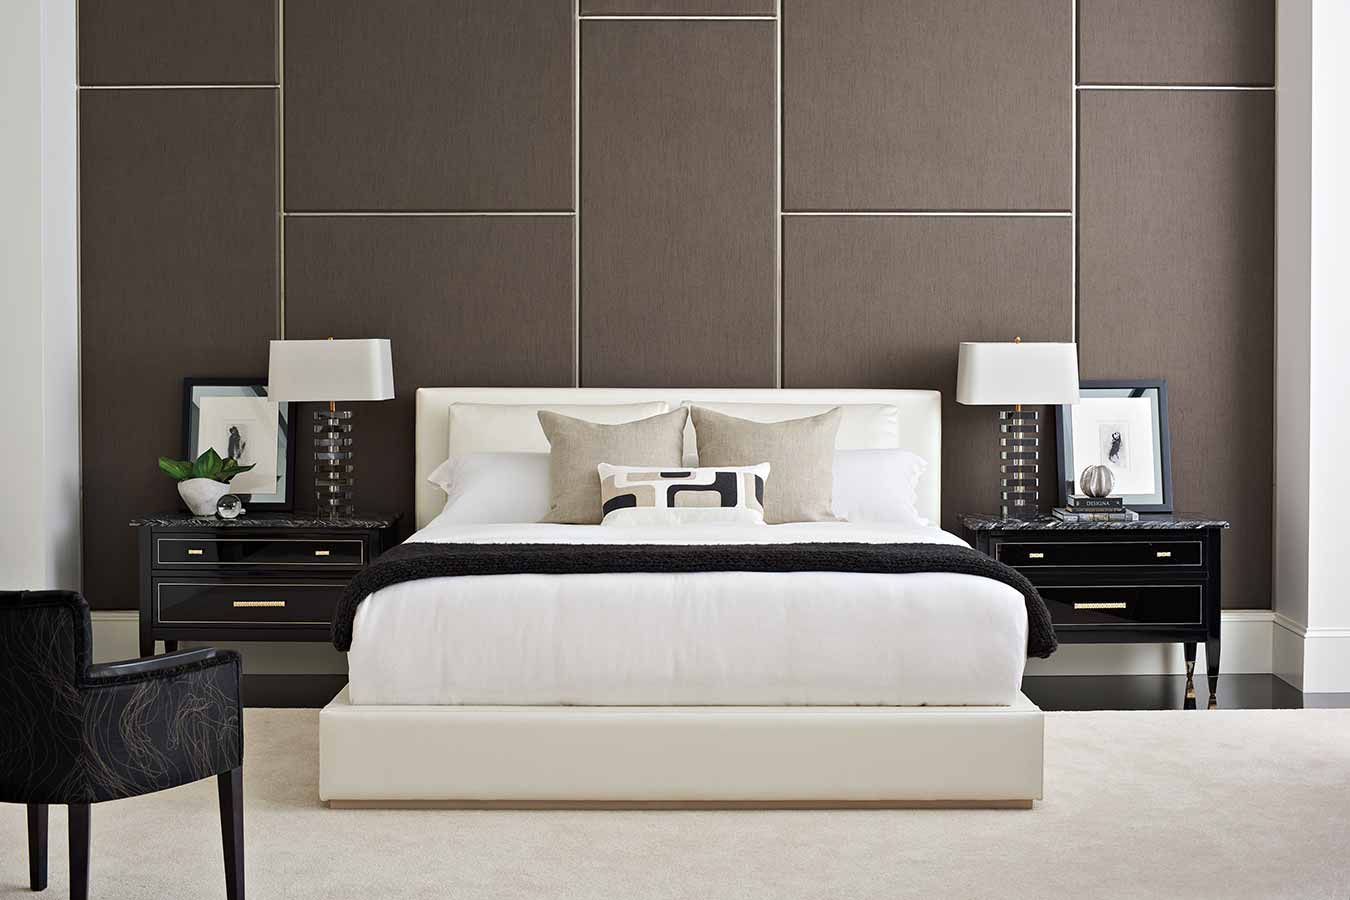 Signature Promethian Collection Bedroom | Contemporary Modern Luxury Exclusive Designer Handcrafted Furniture | Sandton Johannesburg